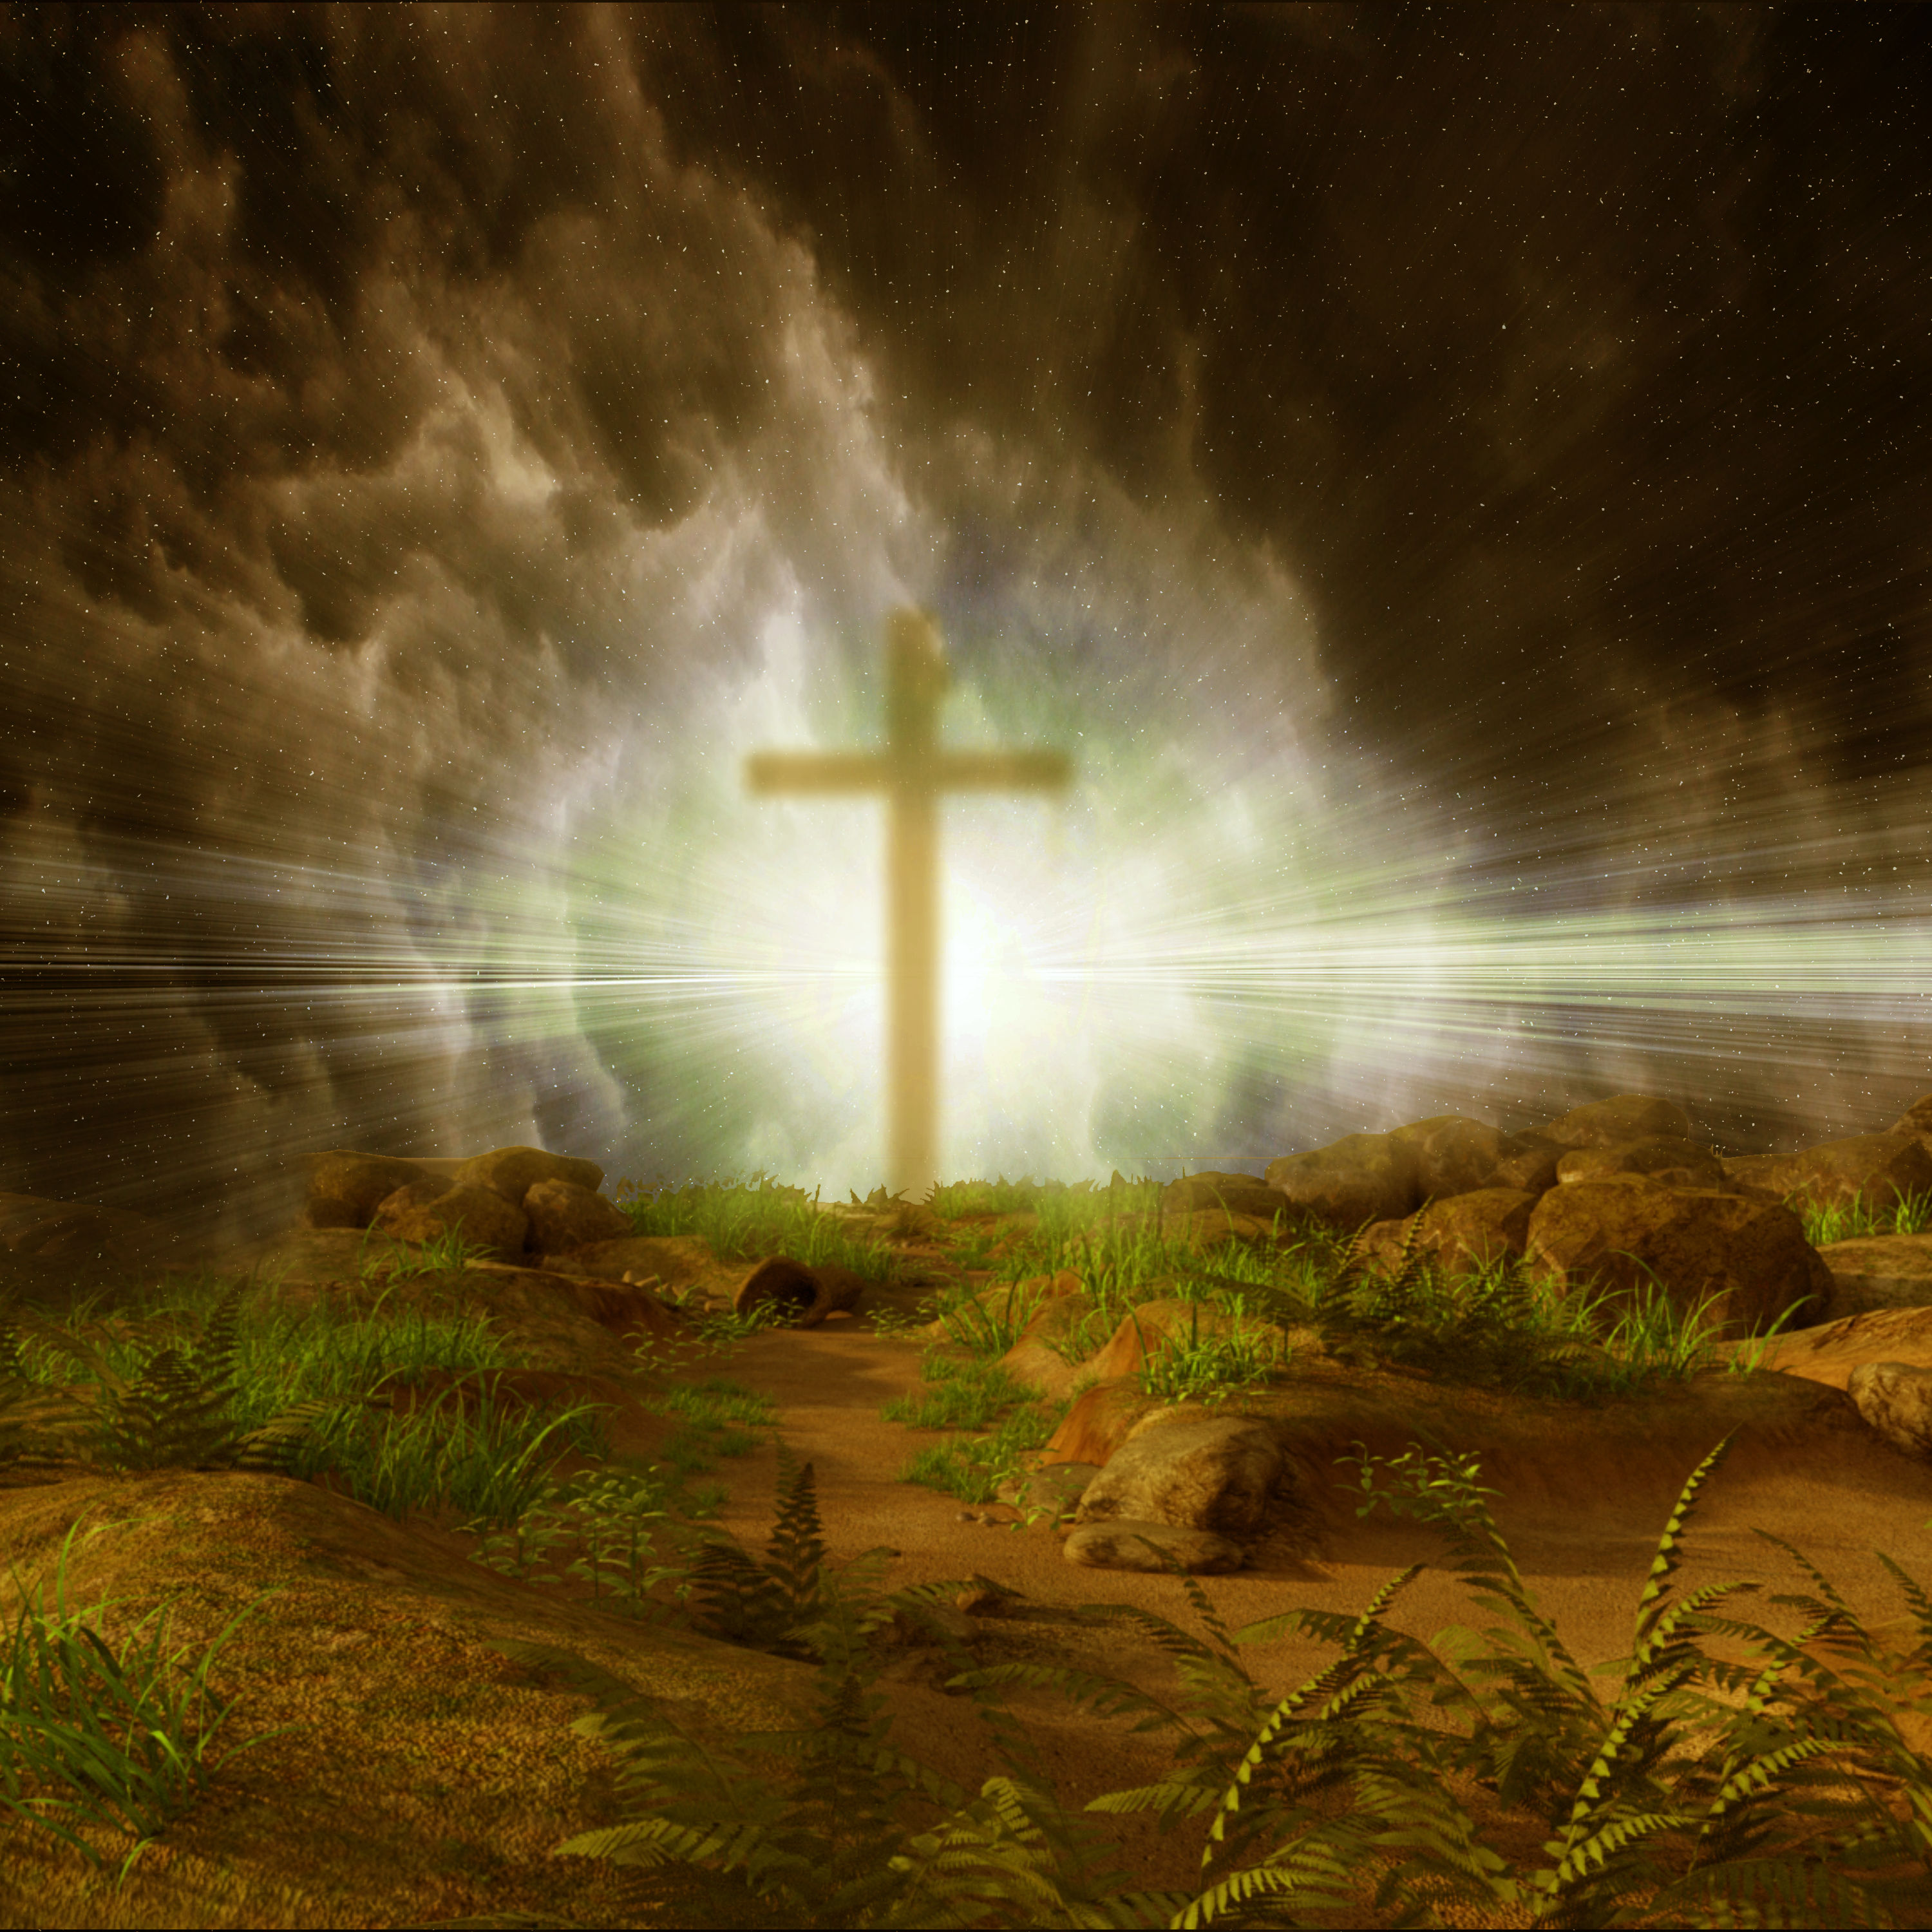 Religious Cross, Believe, Christianity, Cross, Fairytale, HQ Photo